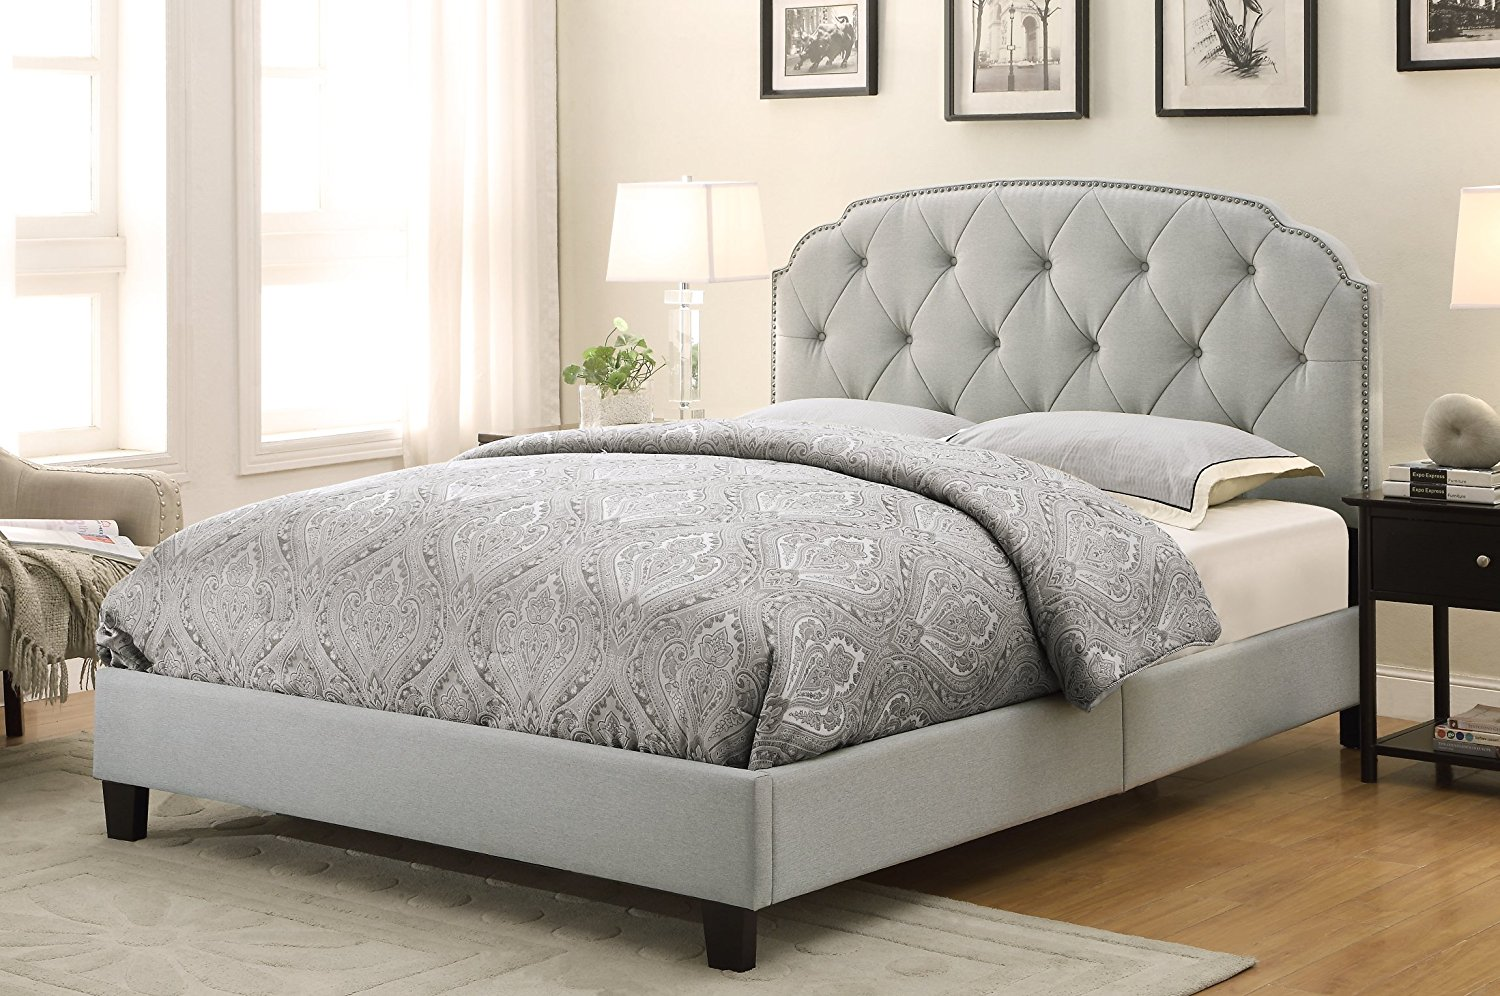 Image of: Gray Upholstered Storage Bed